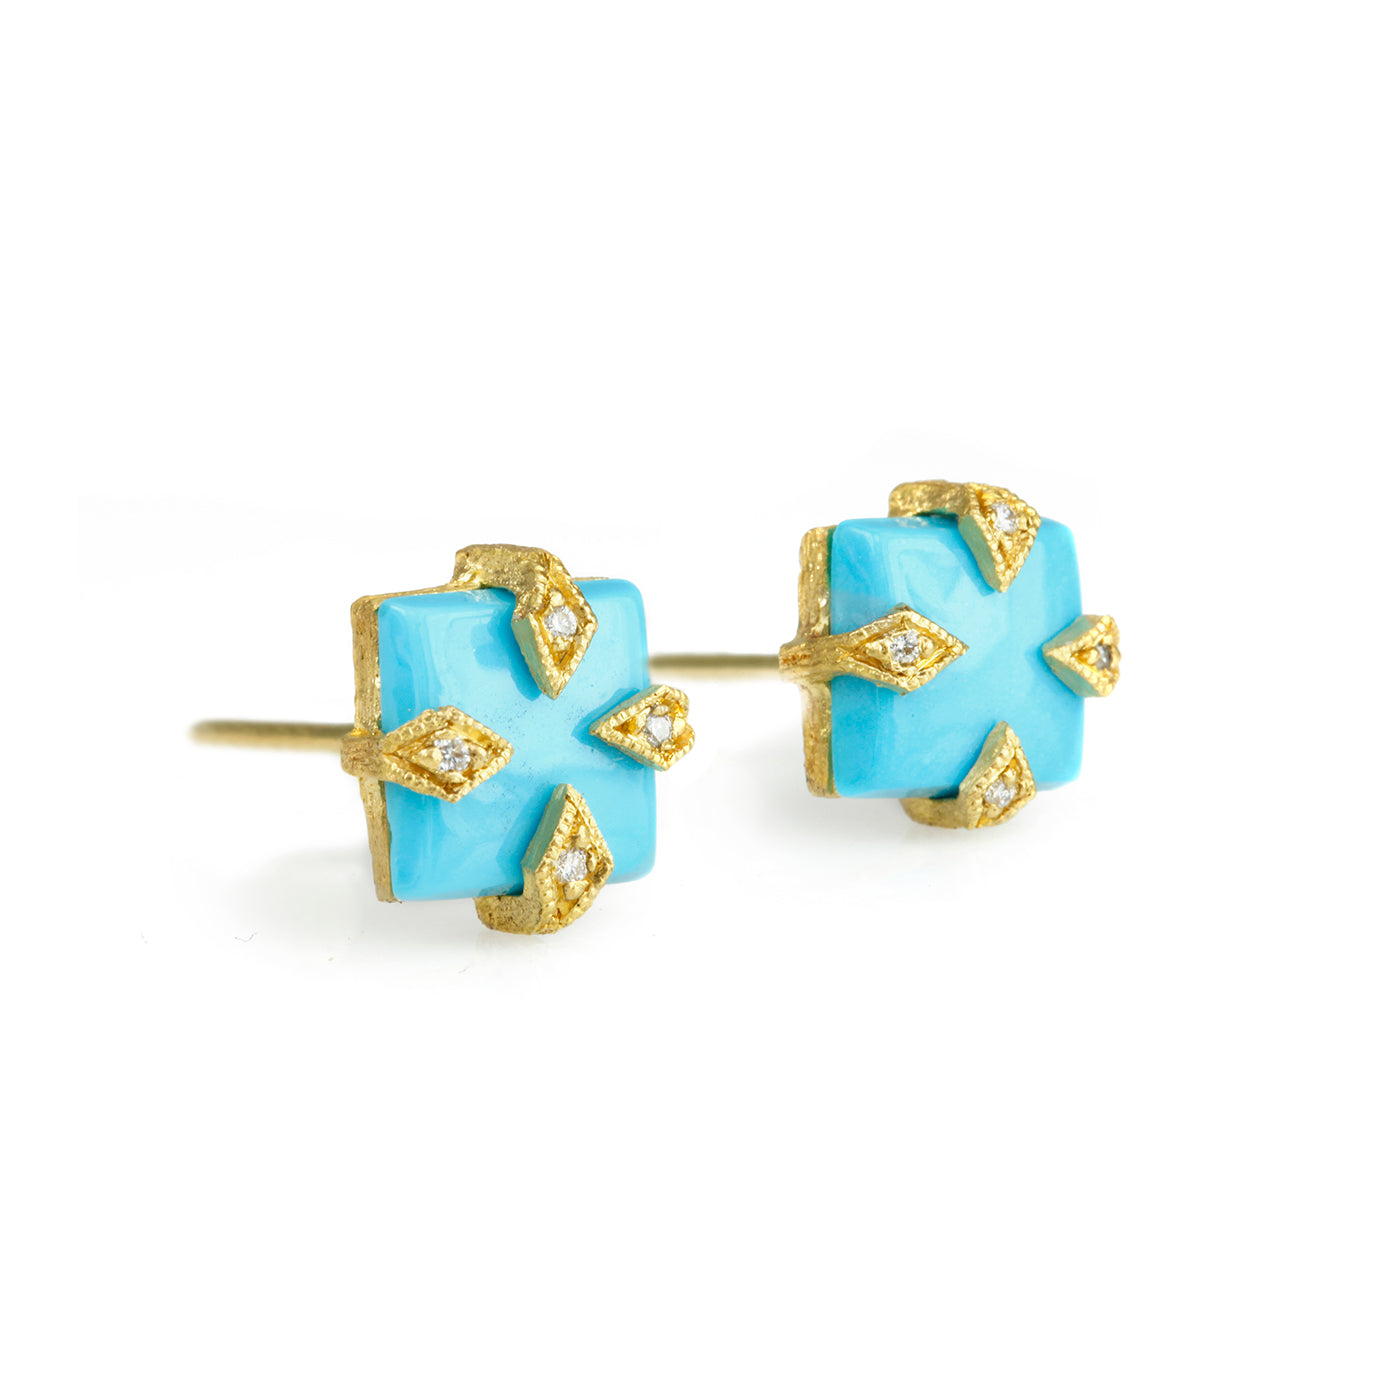 cf97320b0ef72 Cathy Waterman 22K Gold and Square Turquoise